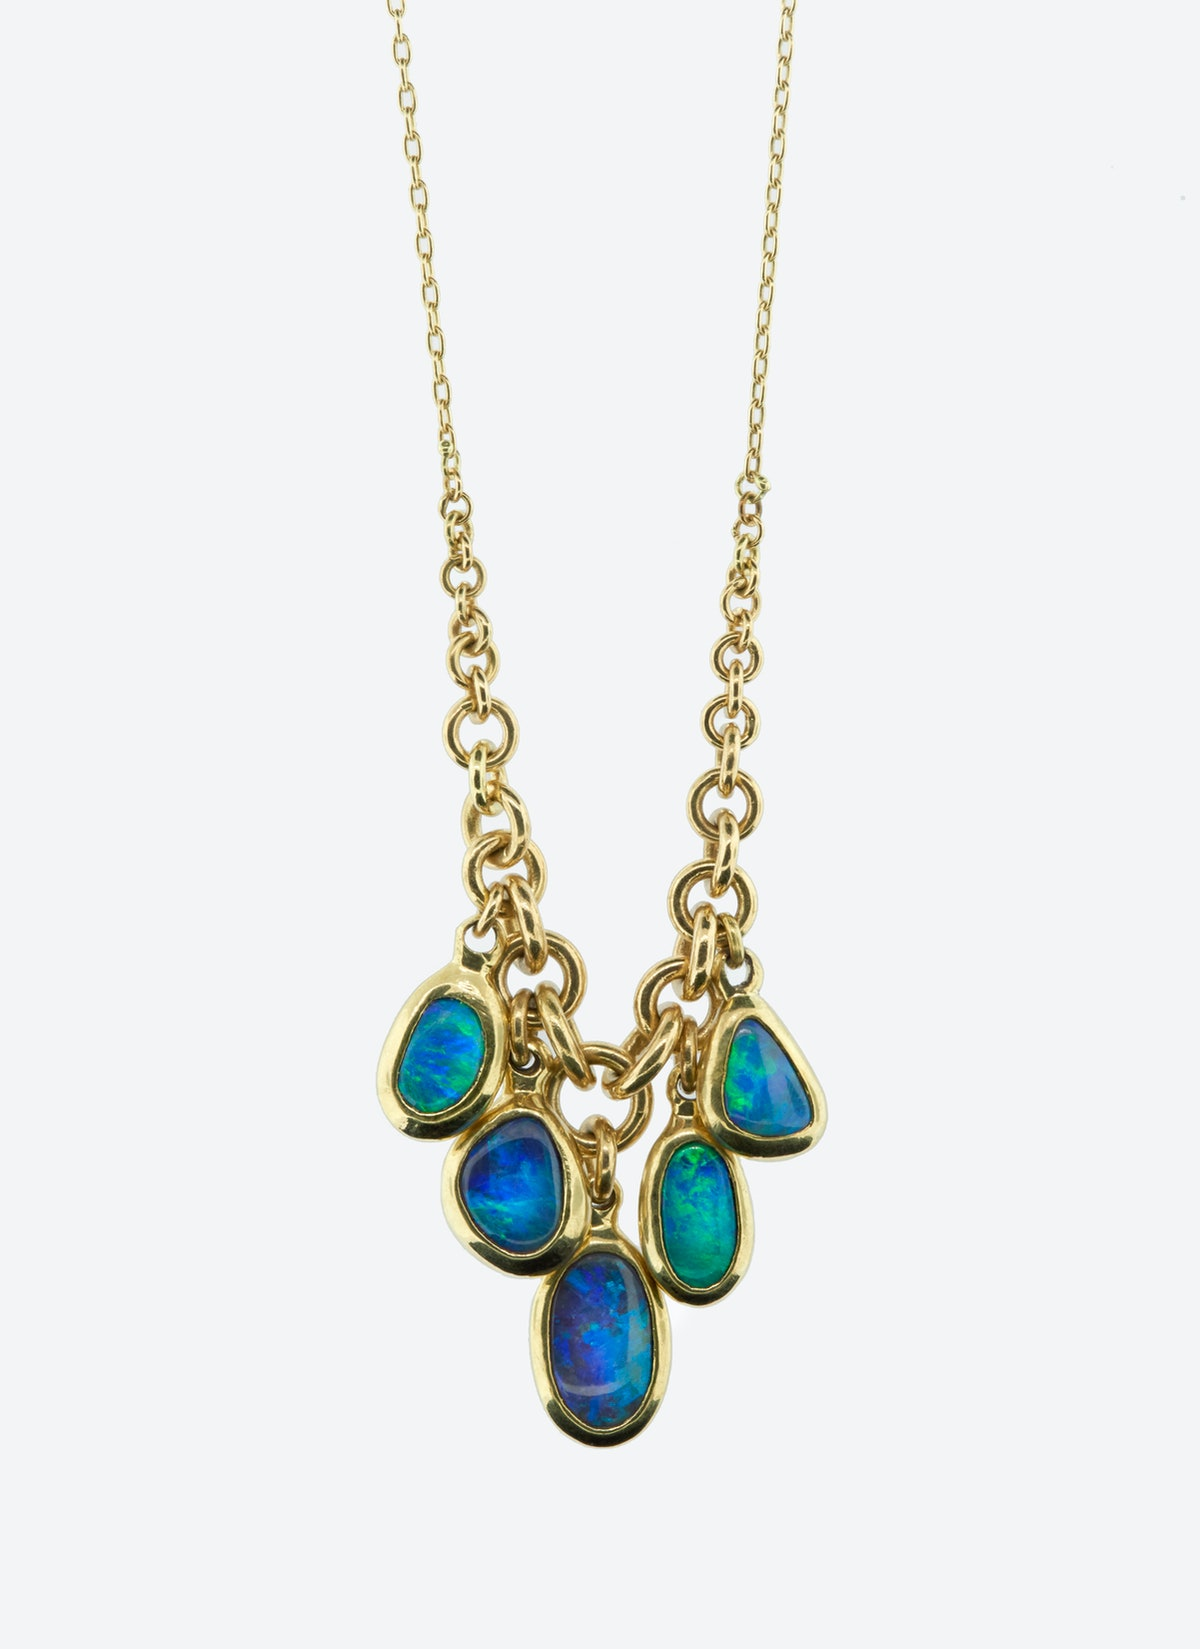 Ten Thousand Things 18K gold and black opal necklace,